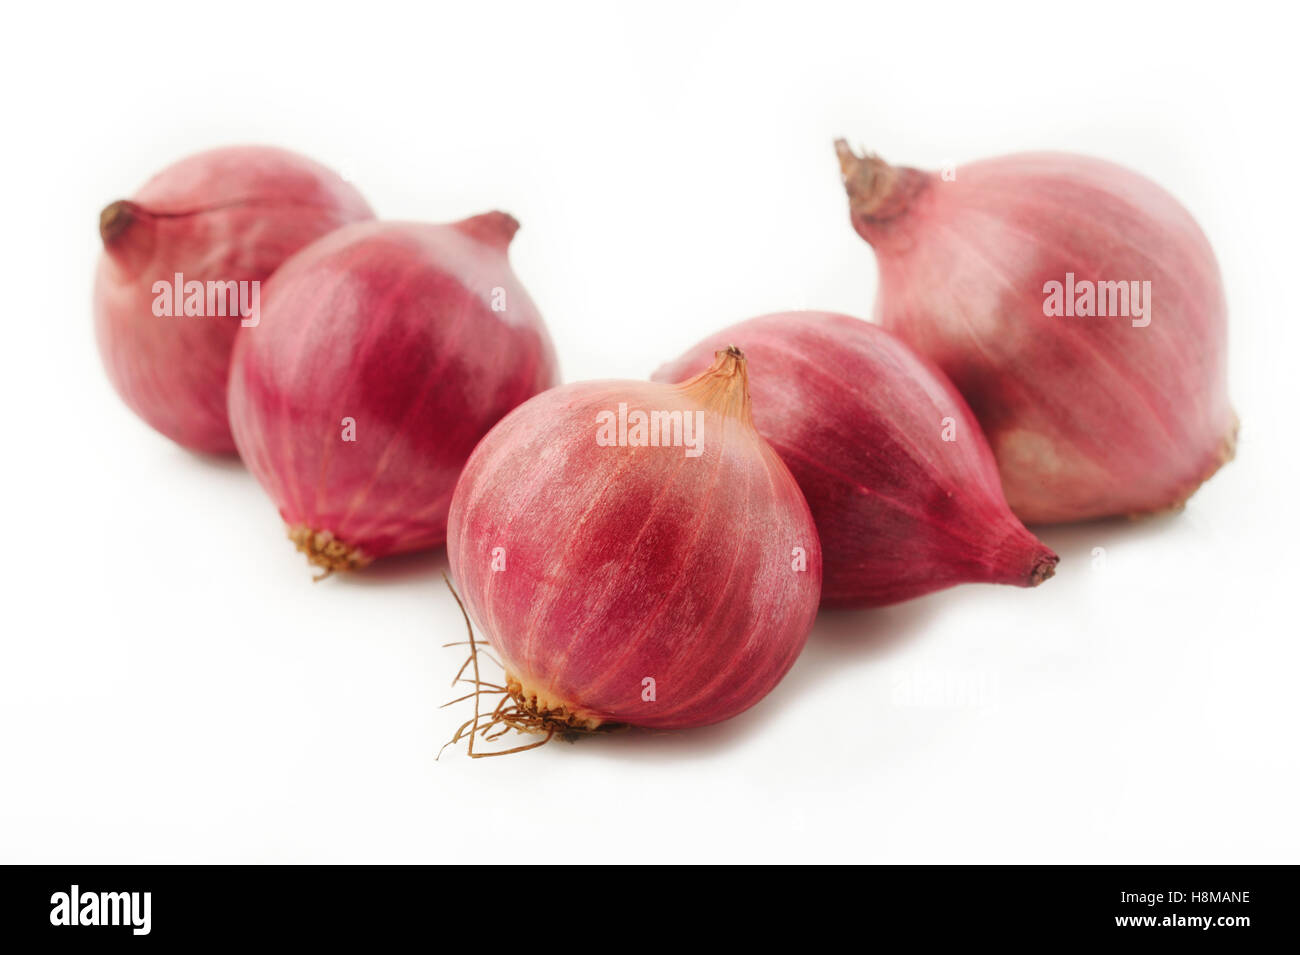 shallot onion isolated on white background - Stock Image